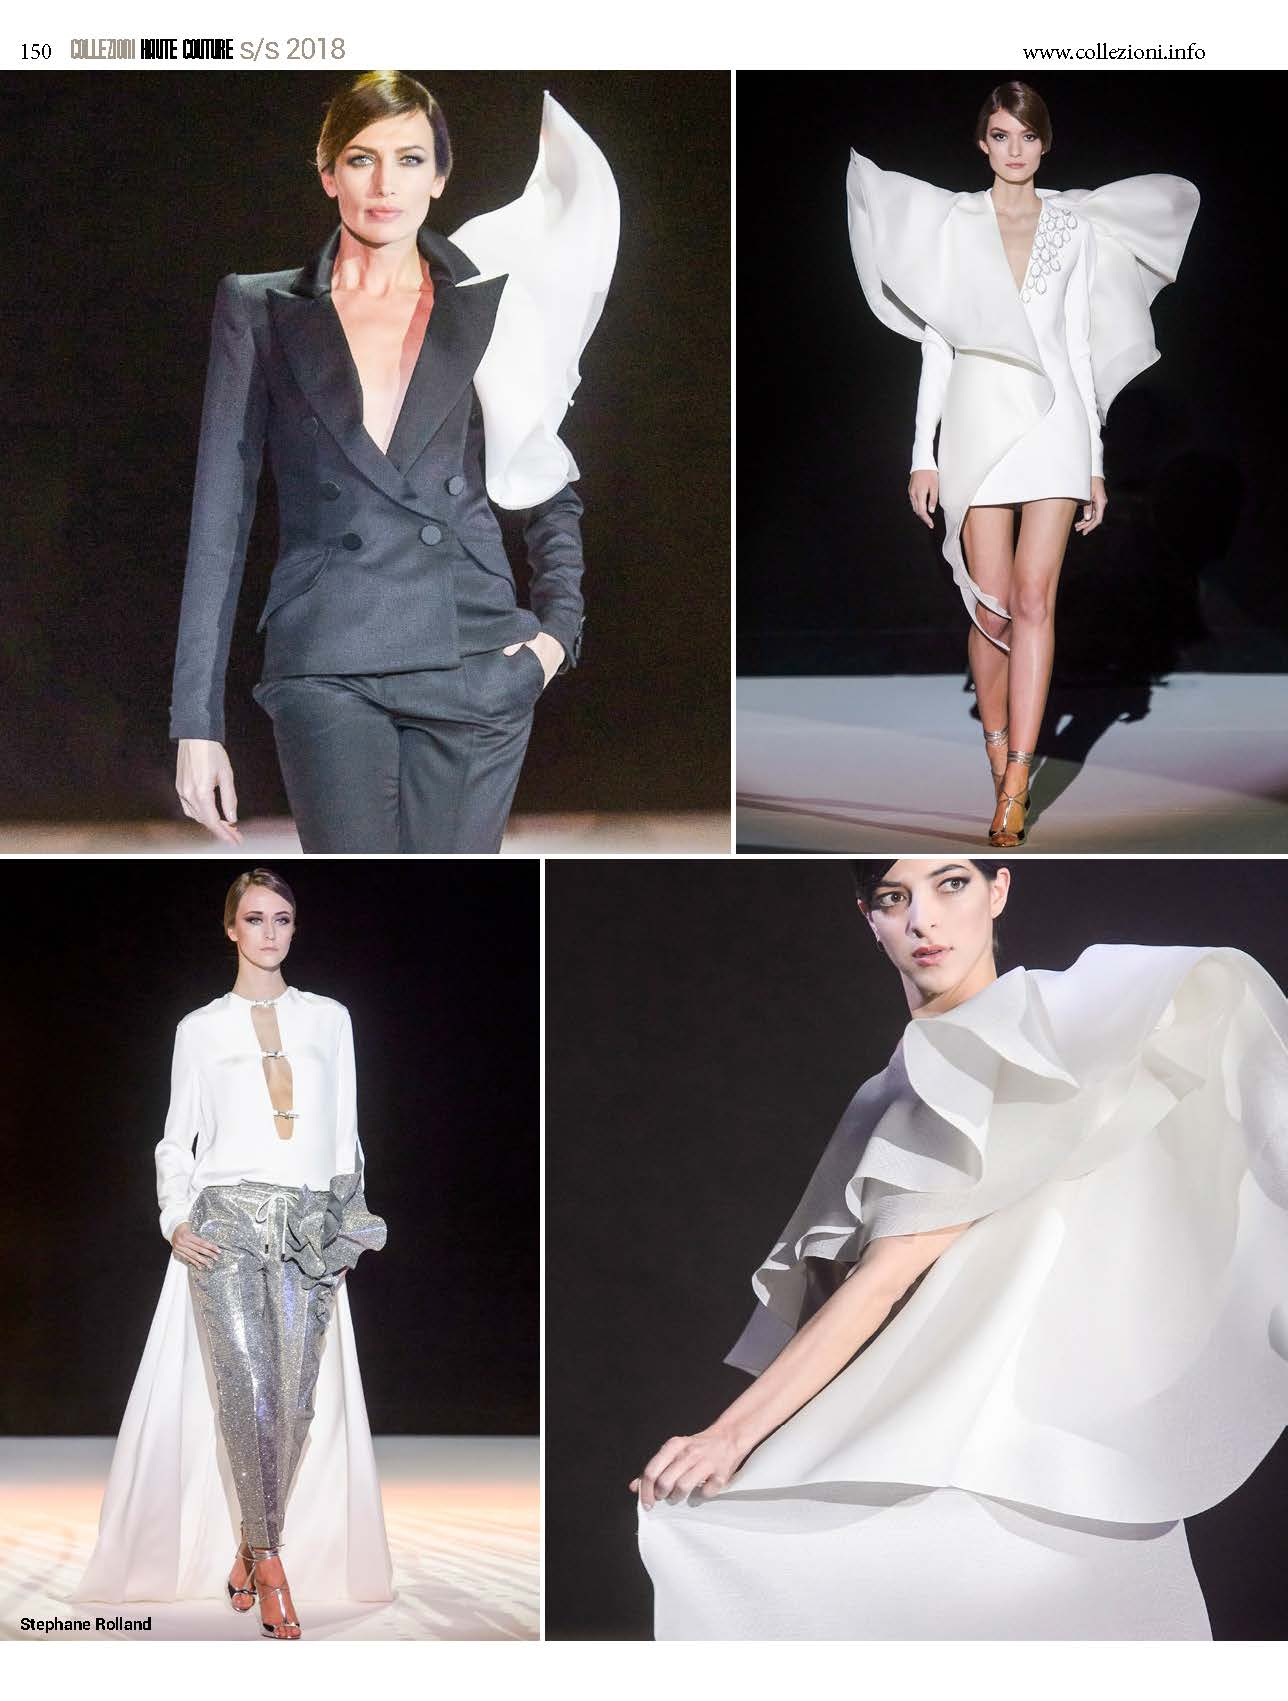 stephane rolland_Page_1